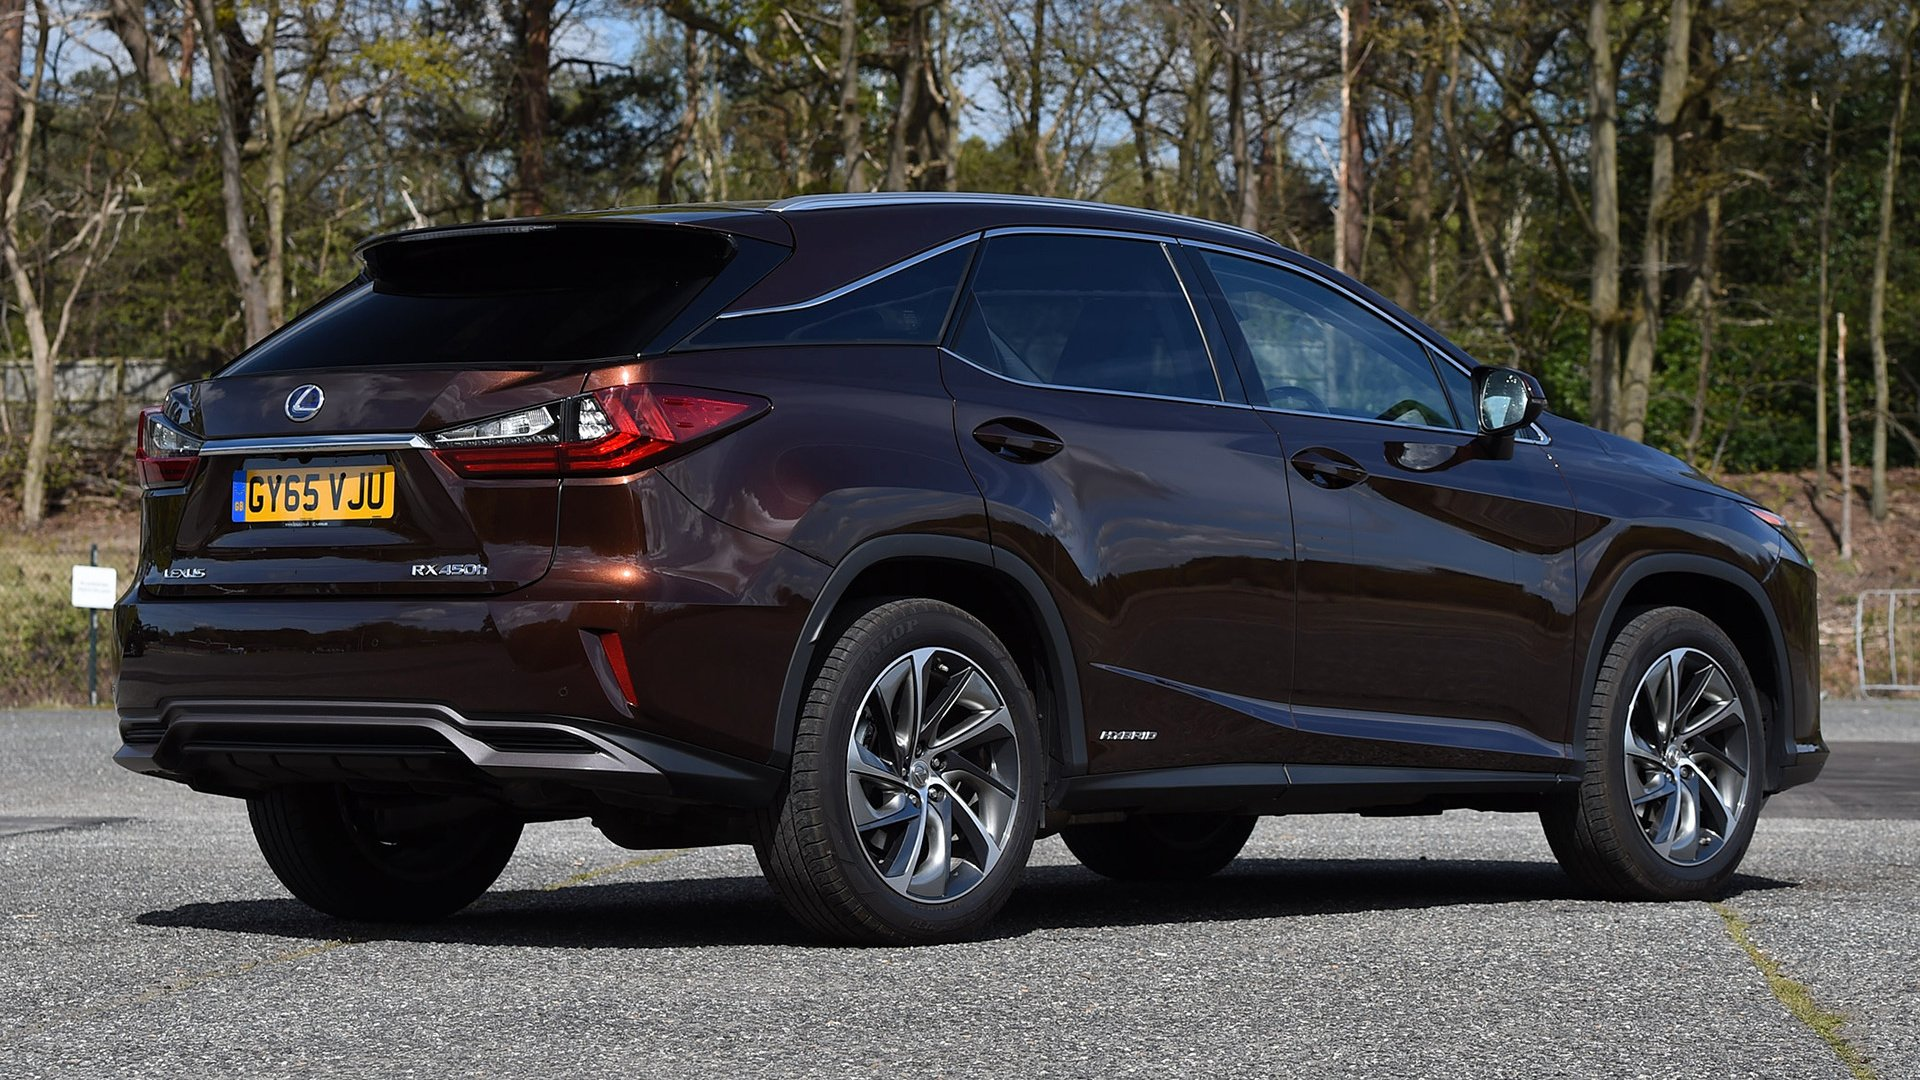 2015 Lexus Rx 450h Hd Wallpaper Background Image 1920x1080 Id 921392 Wallpaper Abyss